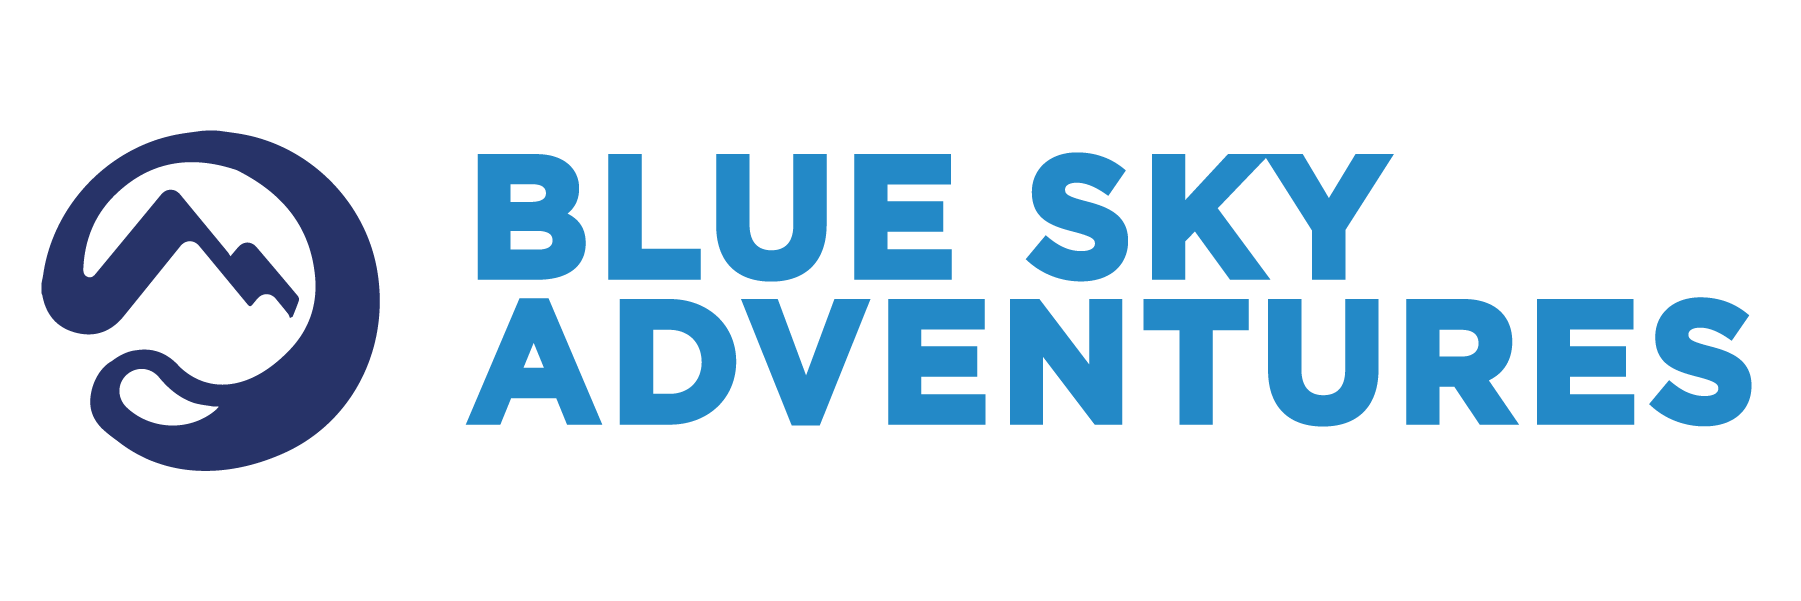 Blue Sky Adventures logo